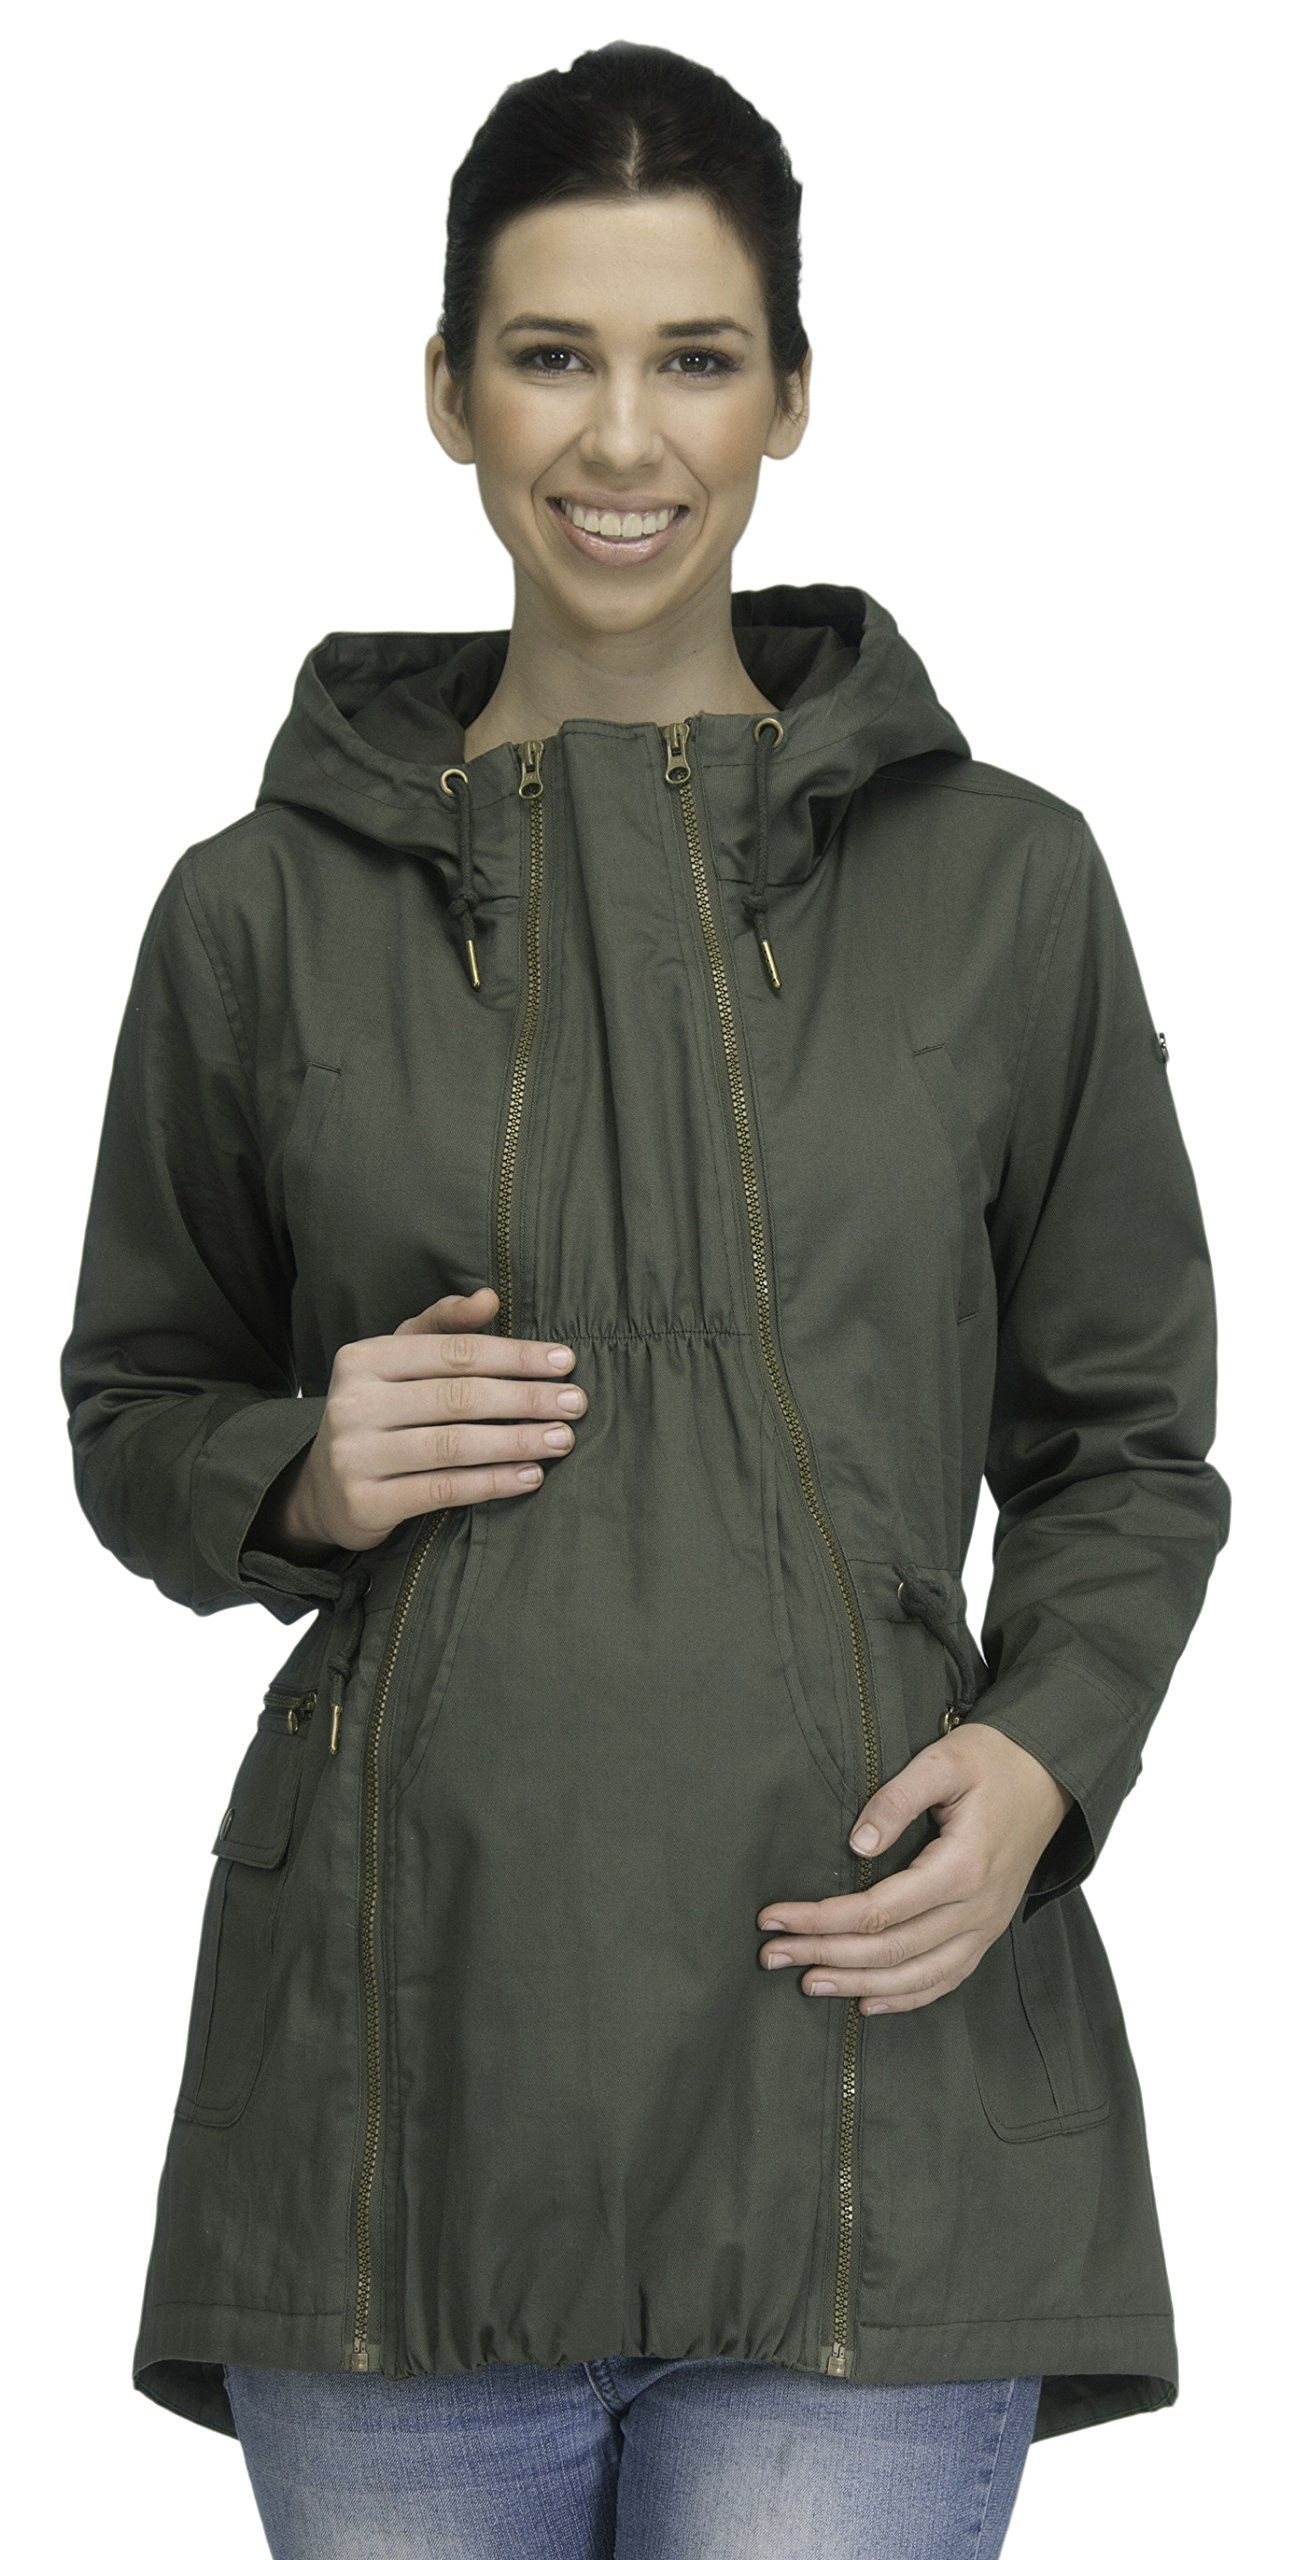 Modern Eternity Womens Military Style Jacket Maternity Large Khaki Green by Modern Eternity